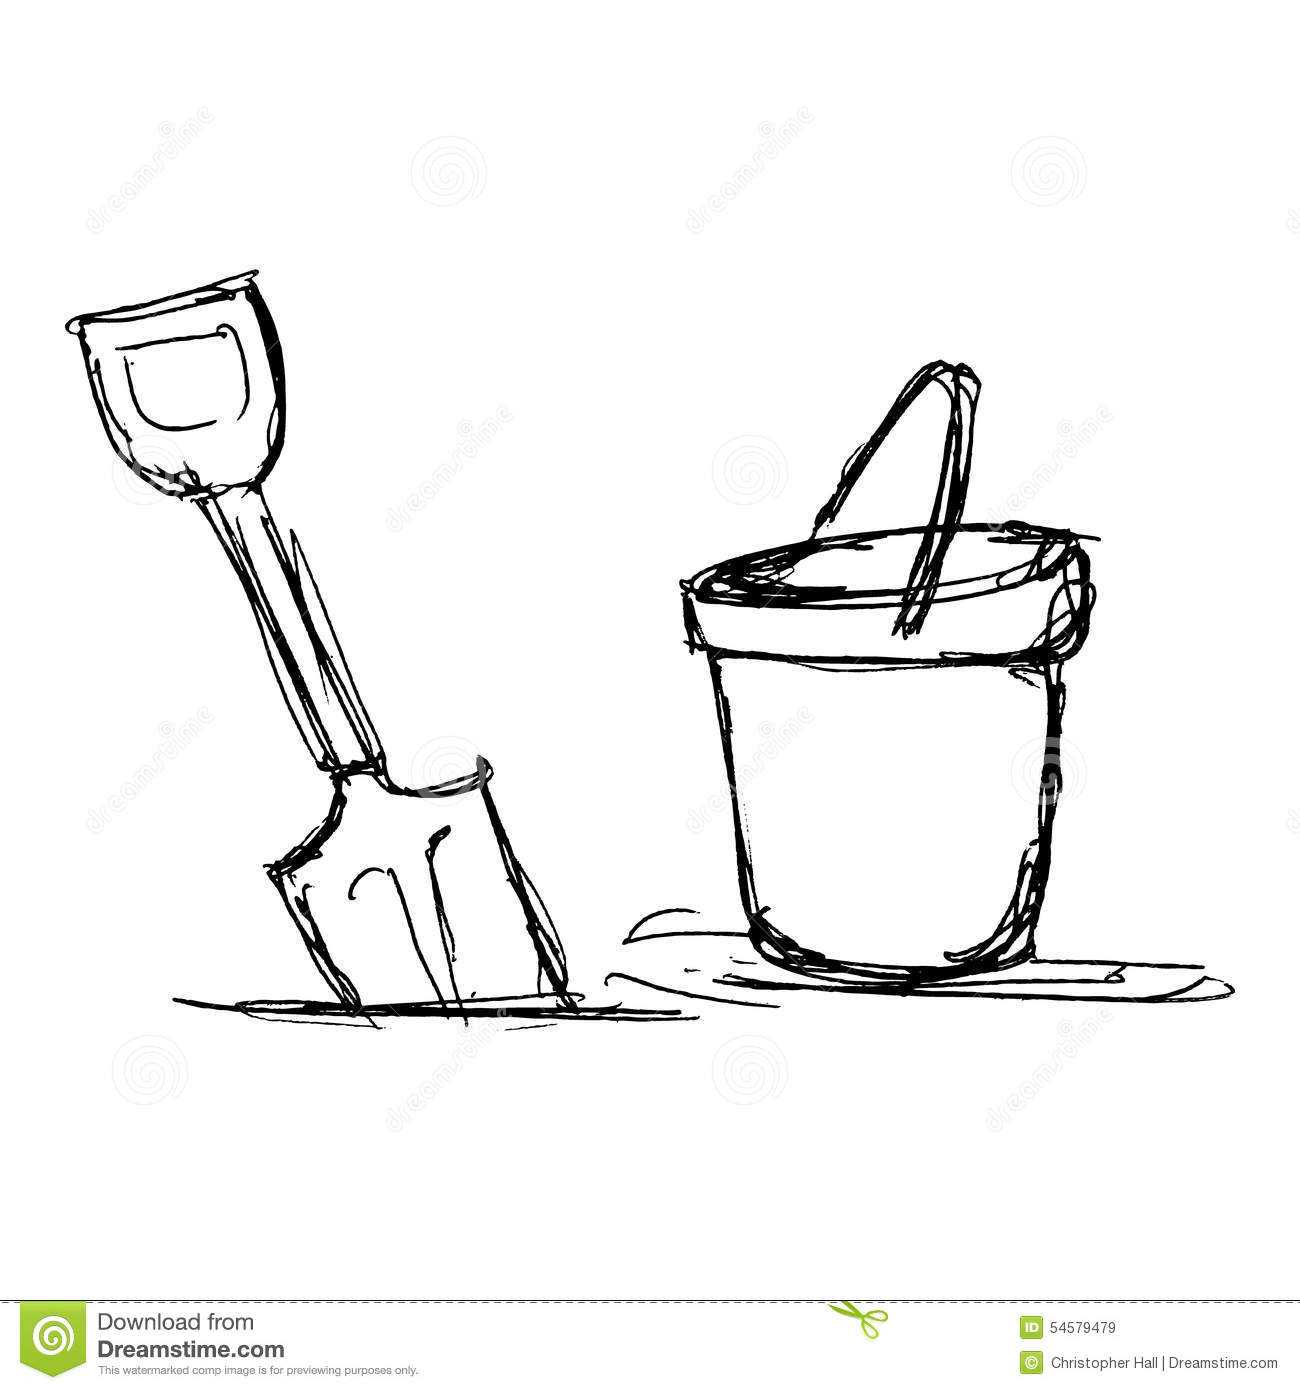 Hand drawn illustration of a bucket and spade